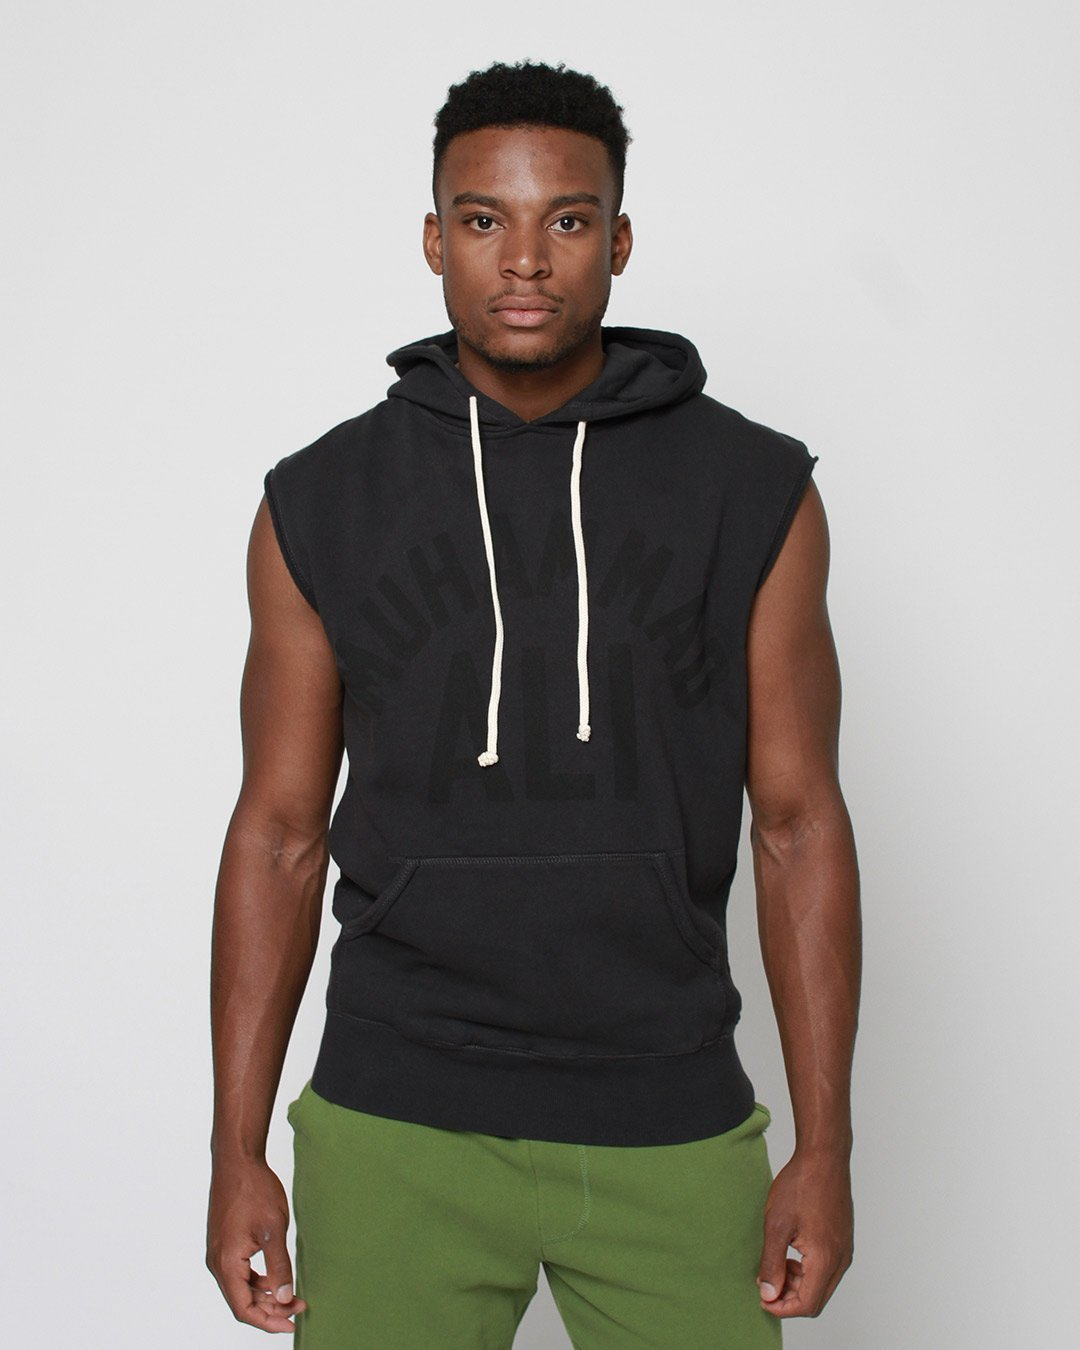 Ali Monochrome Sleeveless Hoody - Roots of Inc dba Roots of Fight